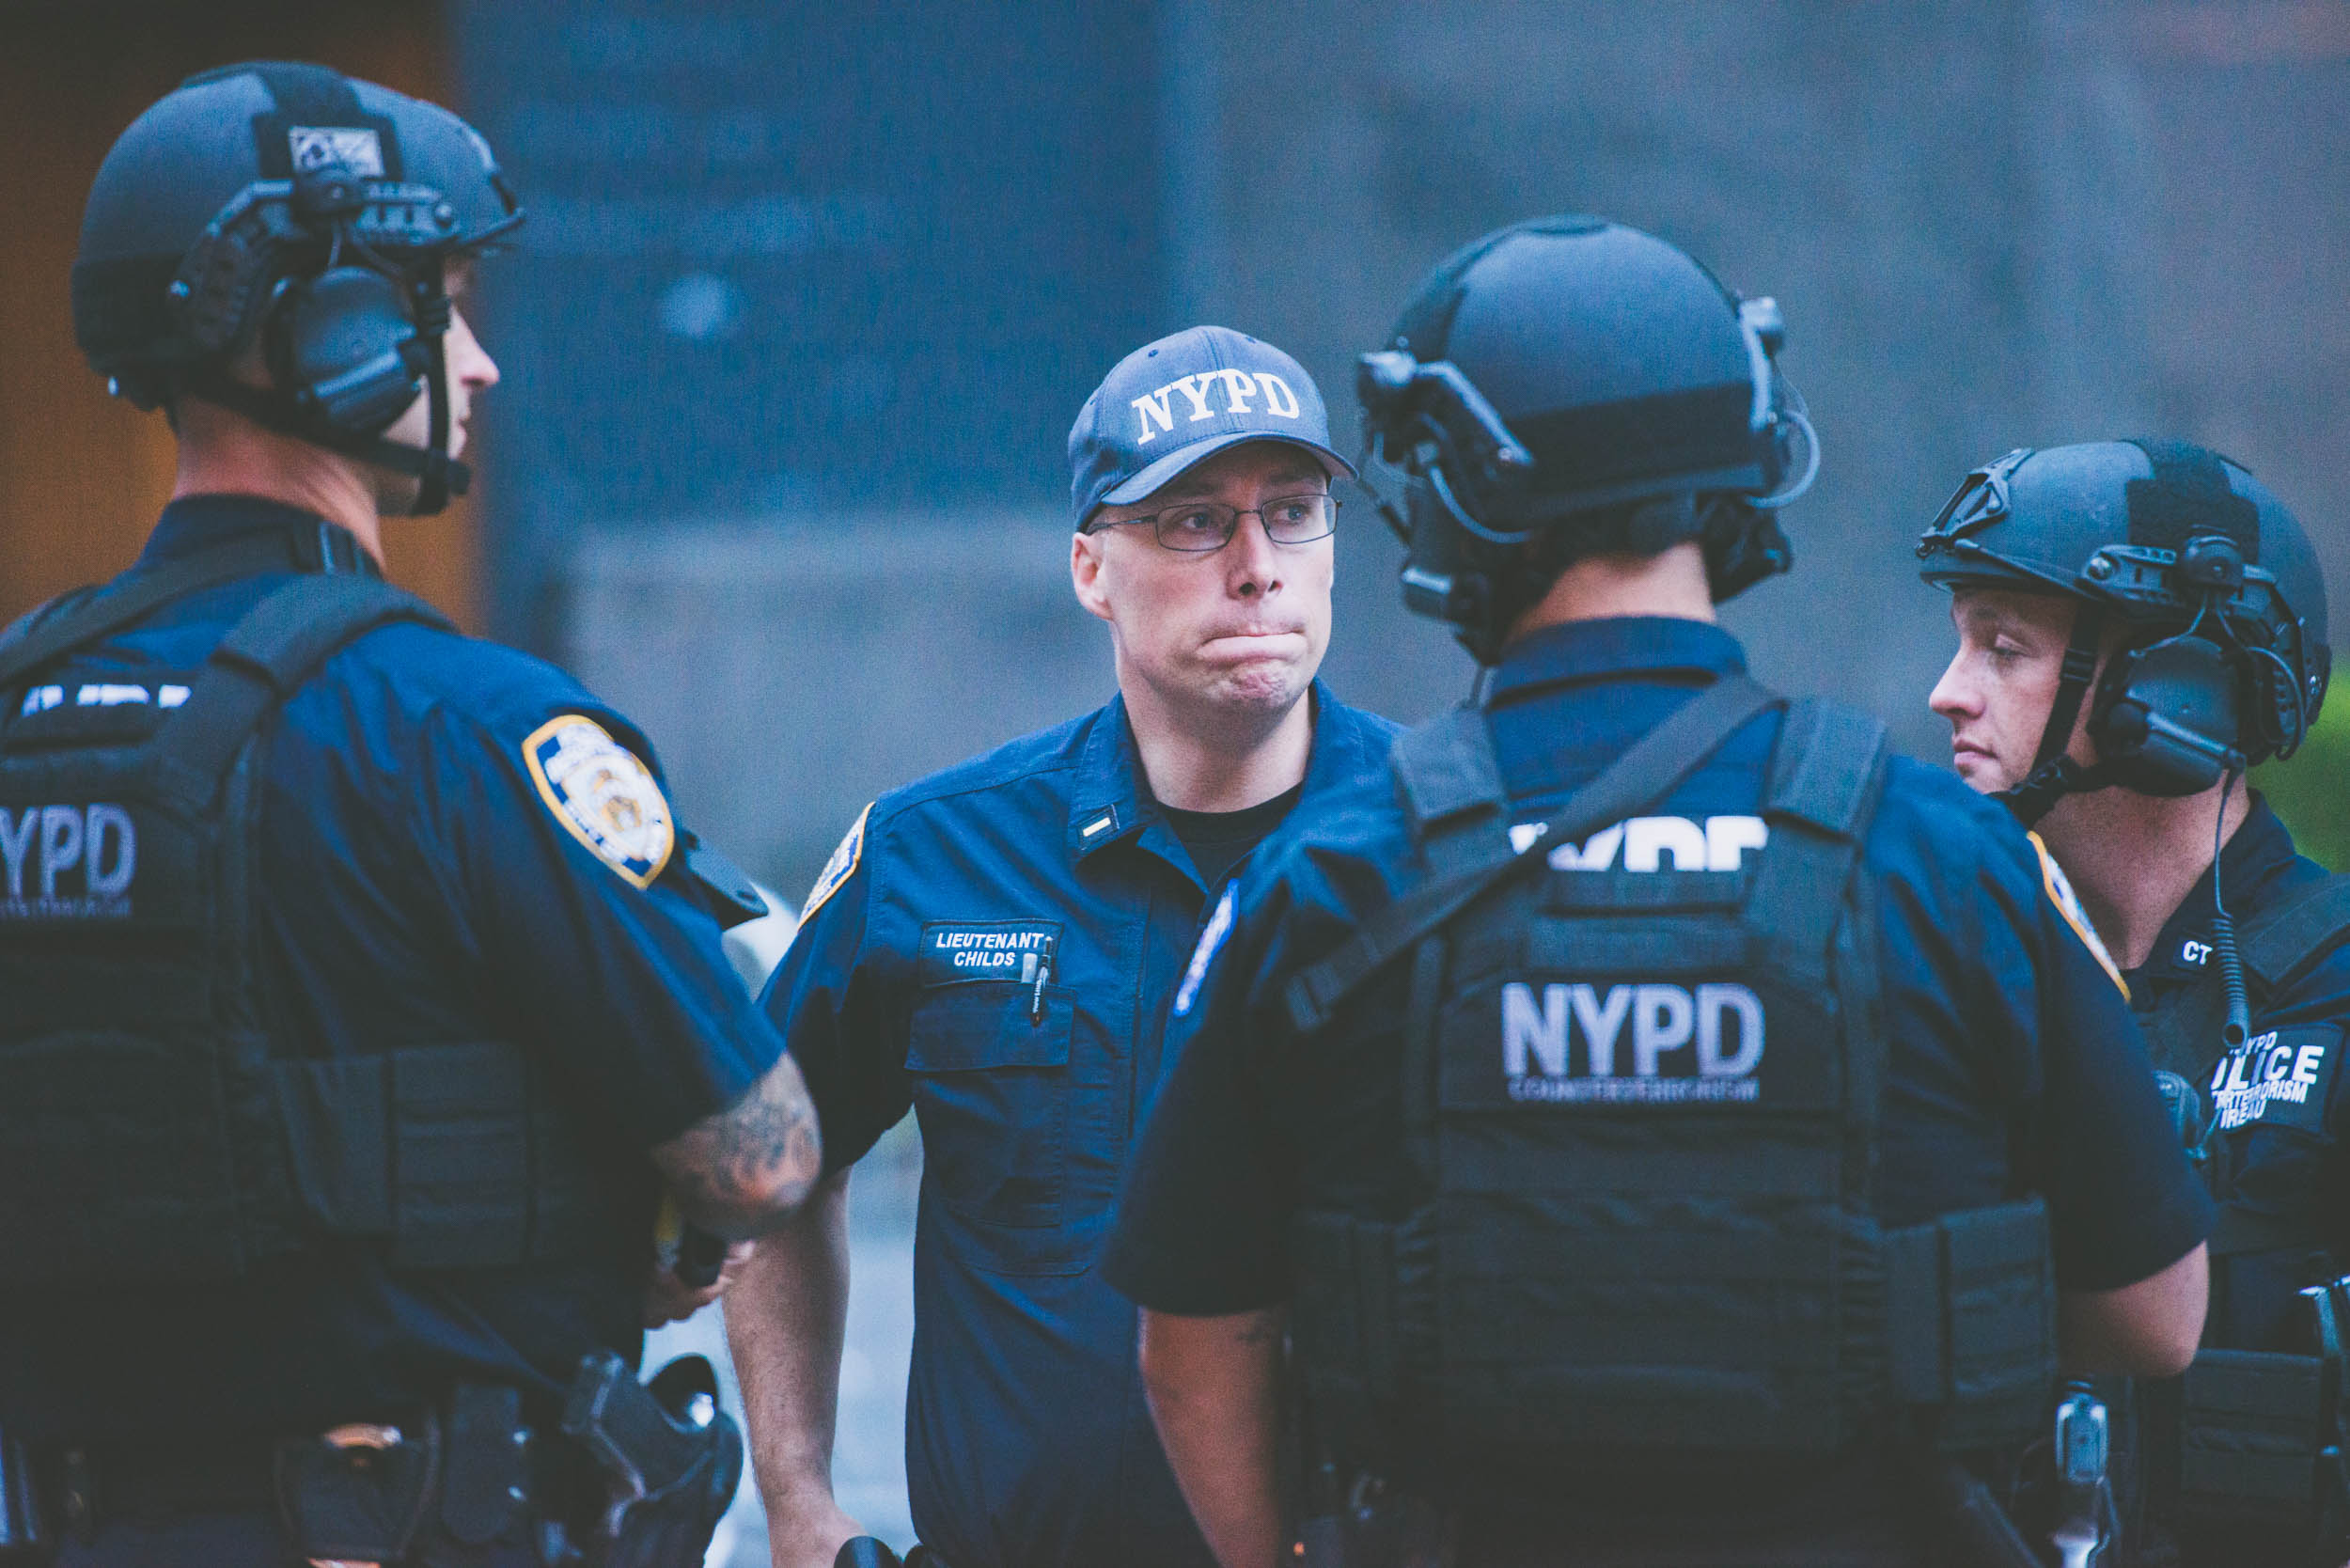 NYPD - Current events - Photo credit Nicola Bailey.jpg